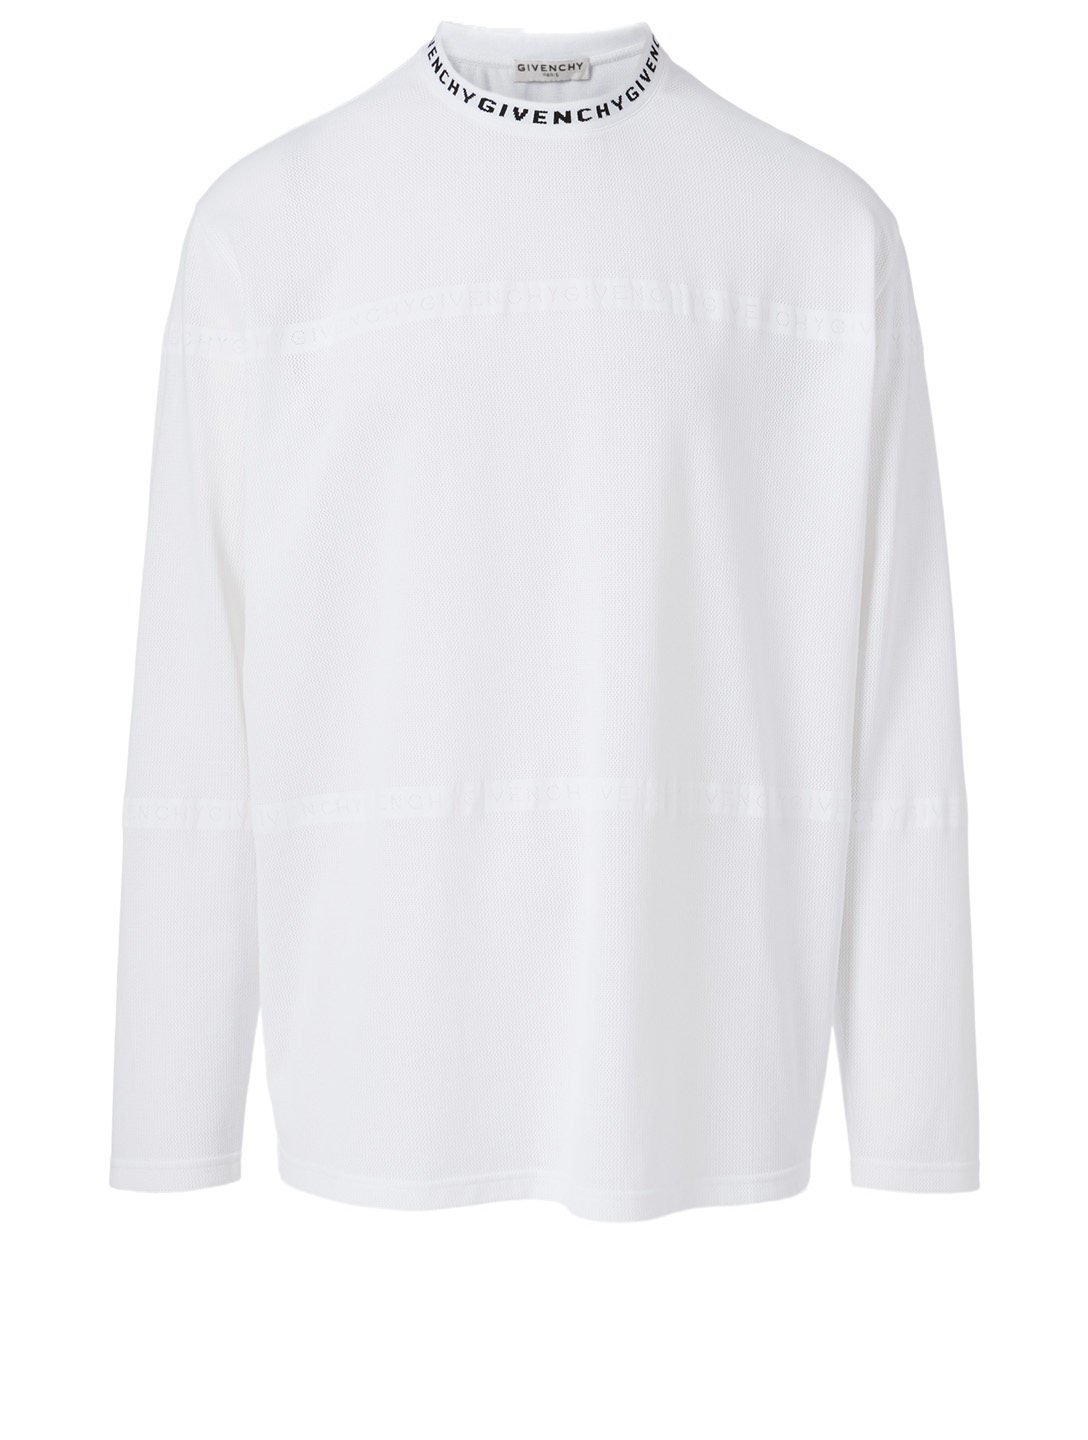 GIVENCHY Long-Sleeve T-Shirt With Intarsia Neck Men's White